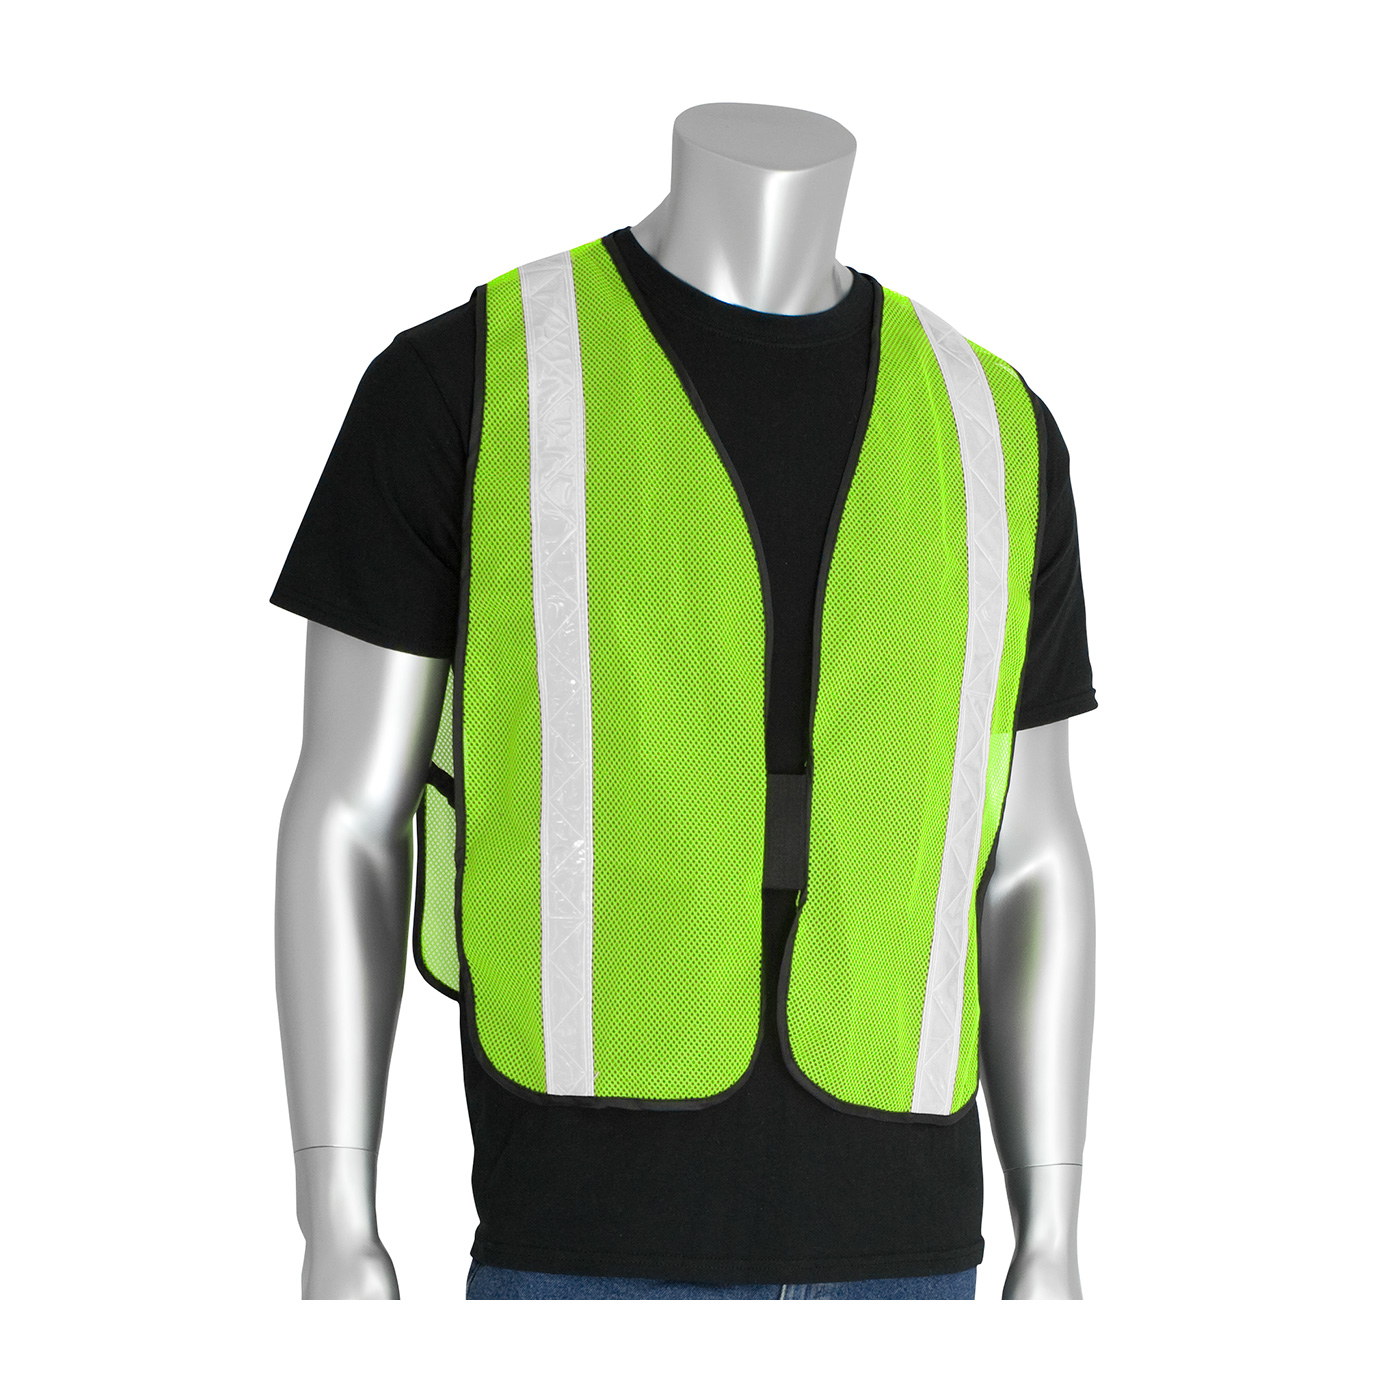 #300-EVOR-PLY PIP® Non-ANSI Red Surveyor's Style Safety Vest with a Solid Front, Mesh Back and Prismatic Tape